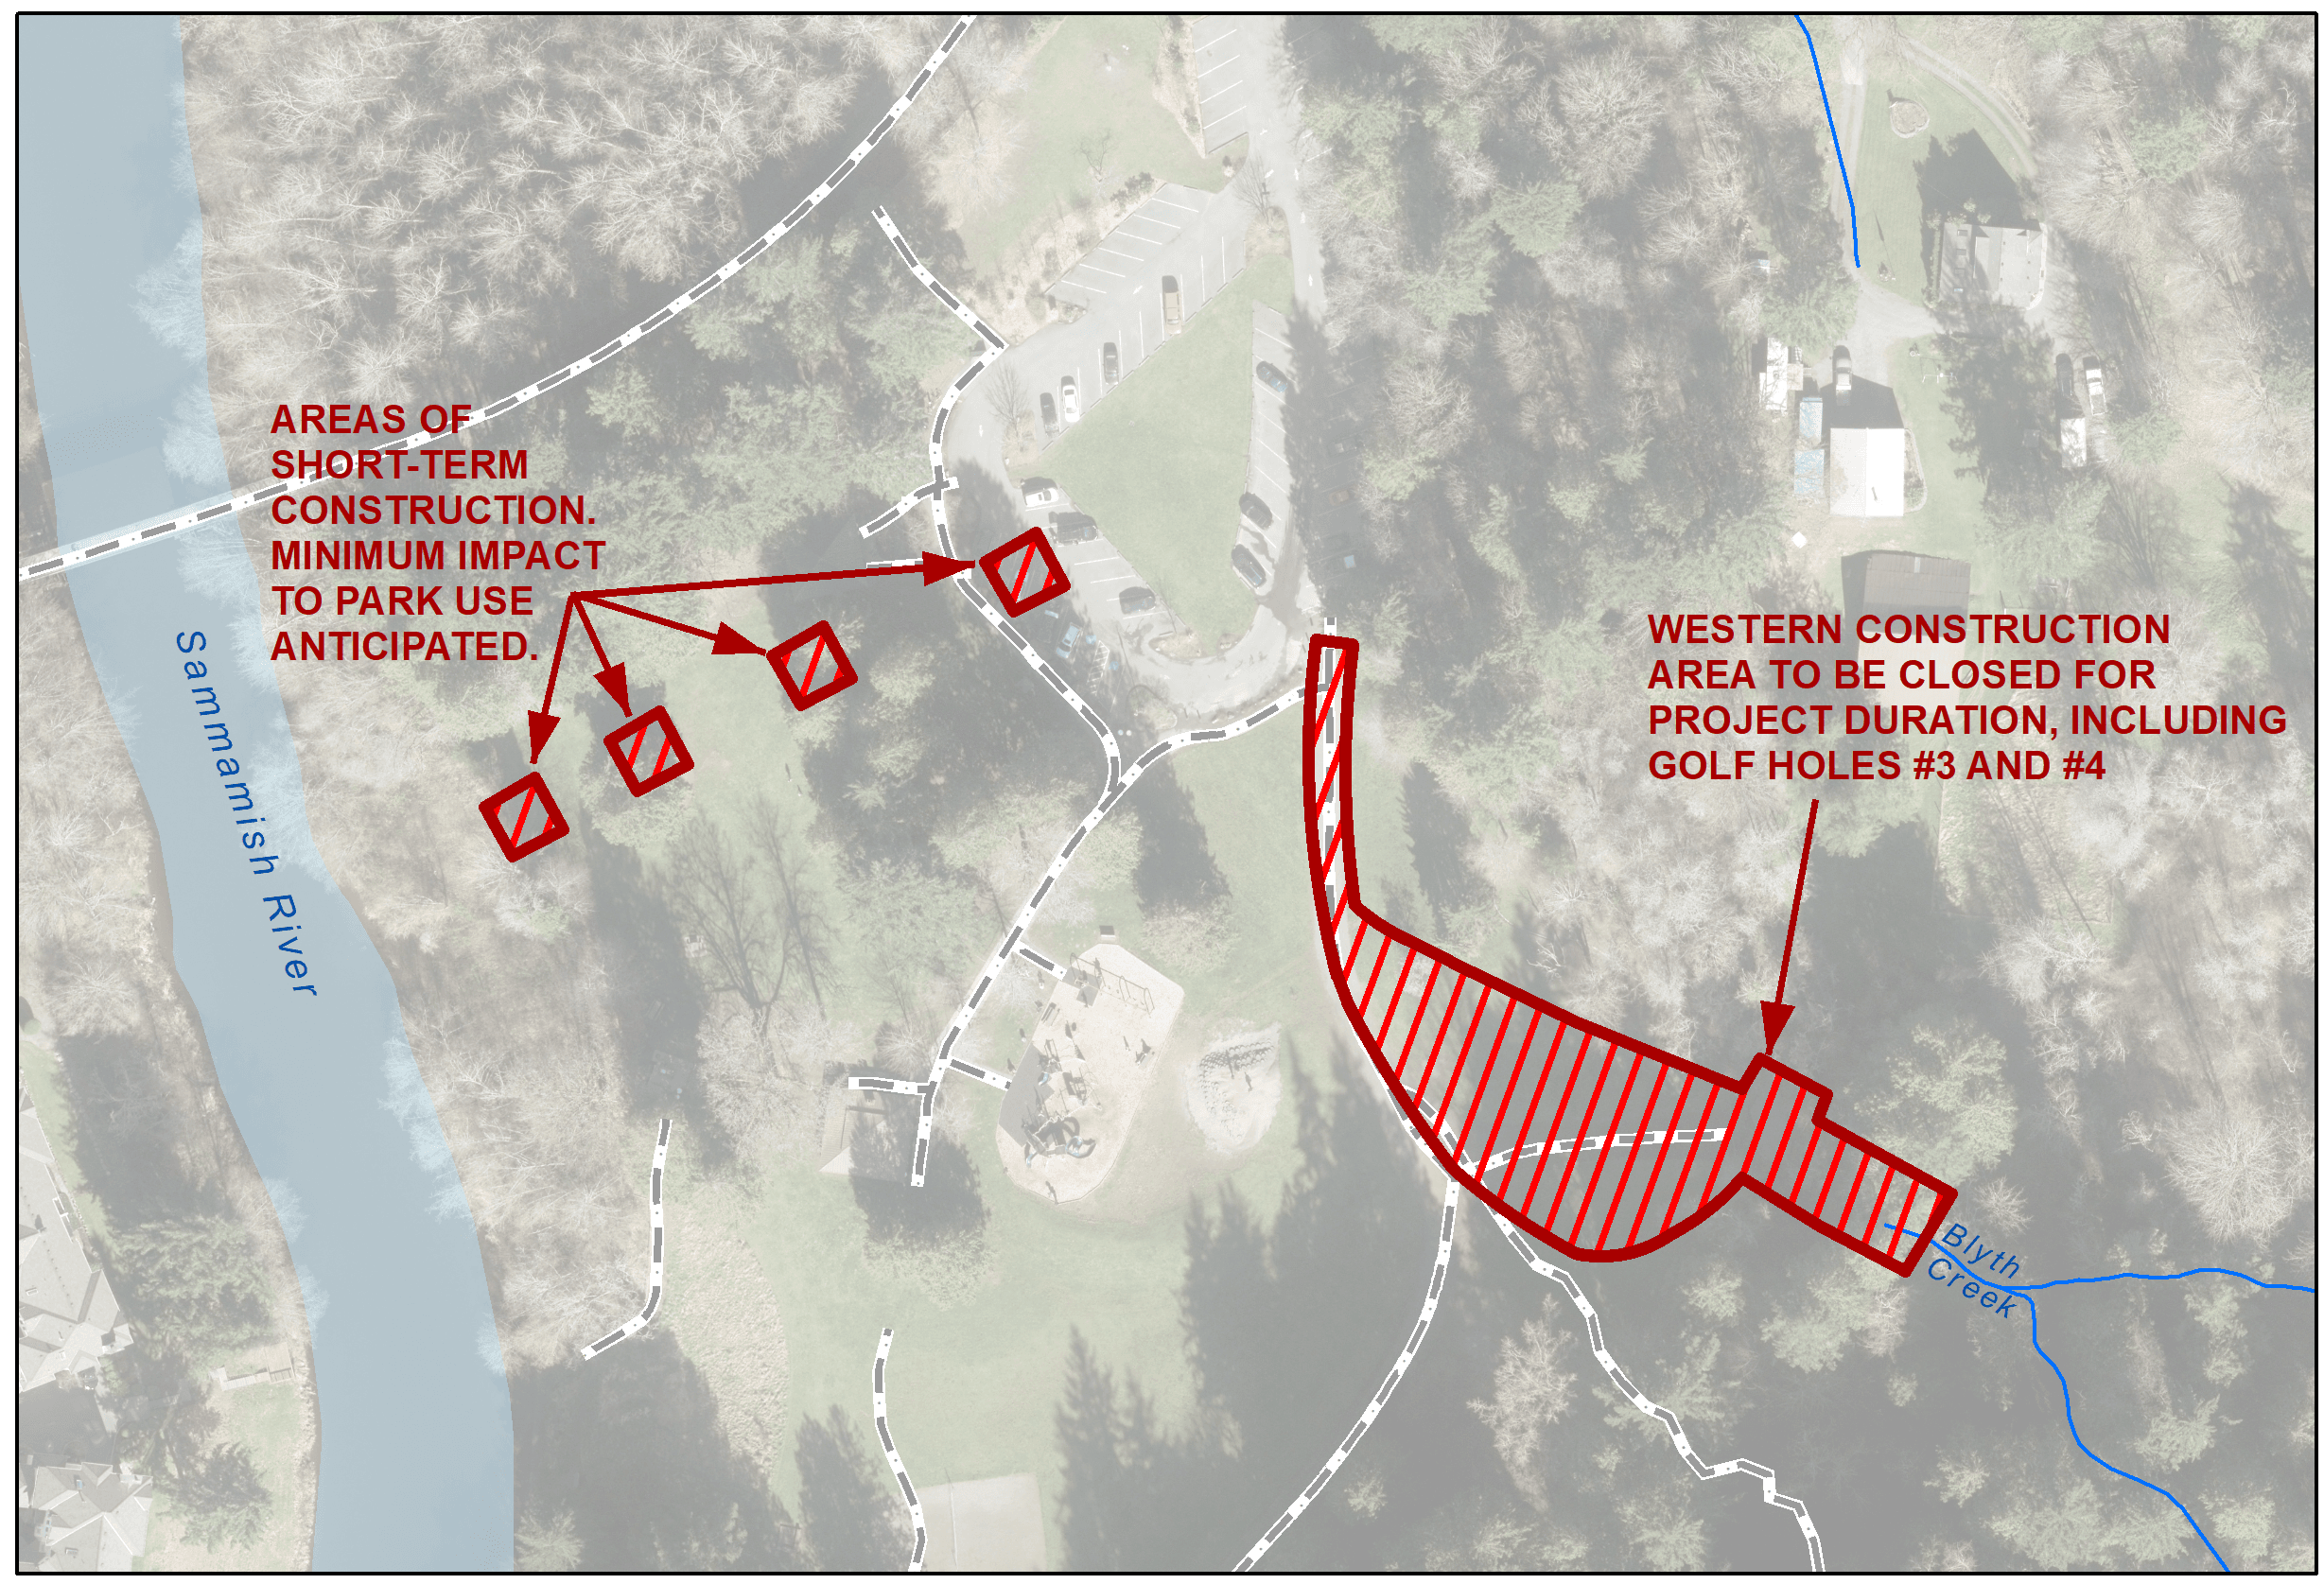 Image of the construction area and impacts